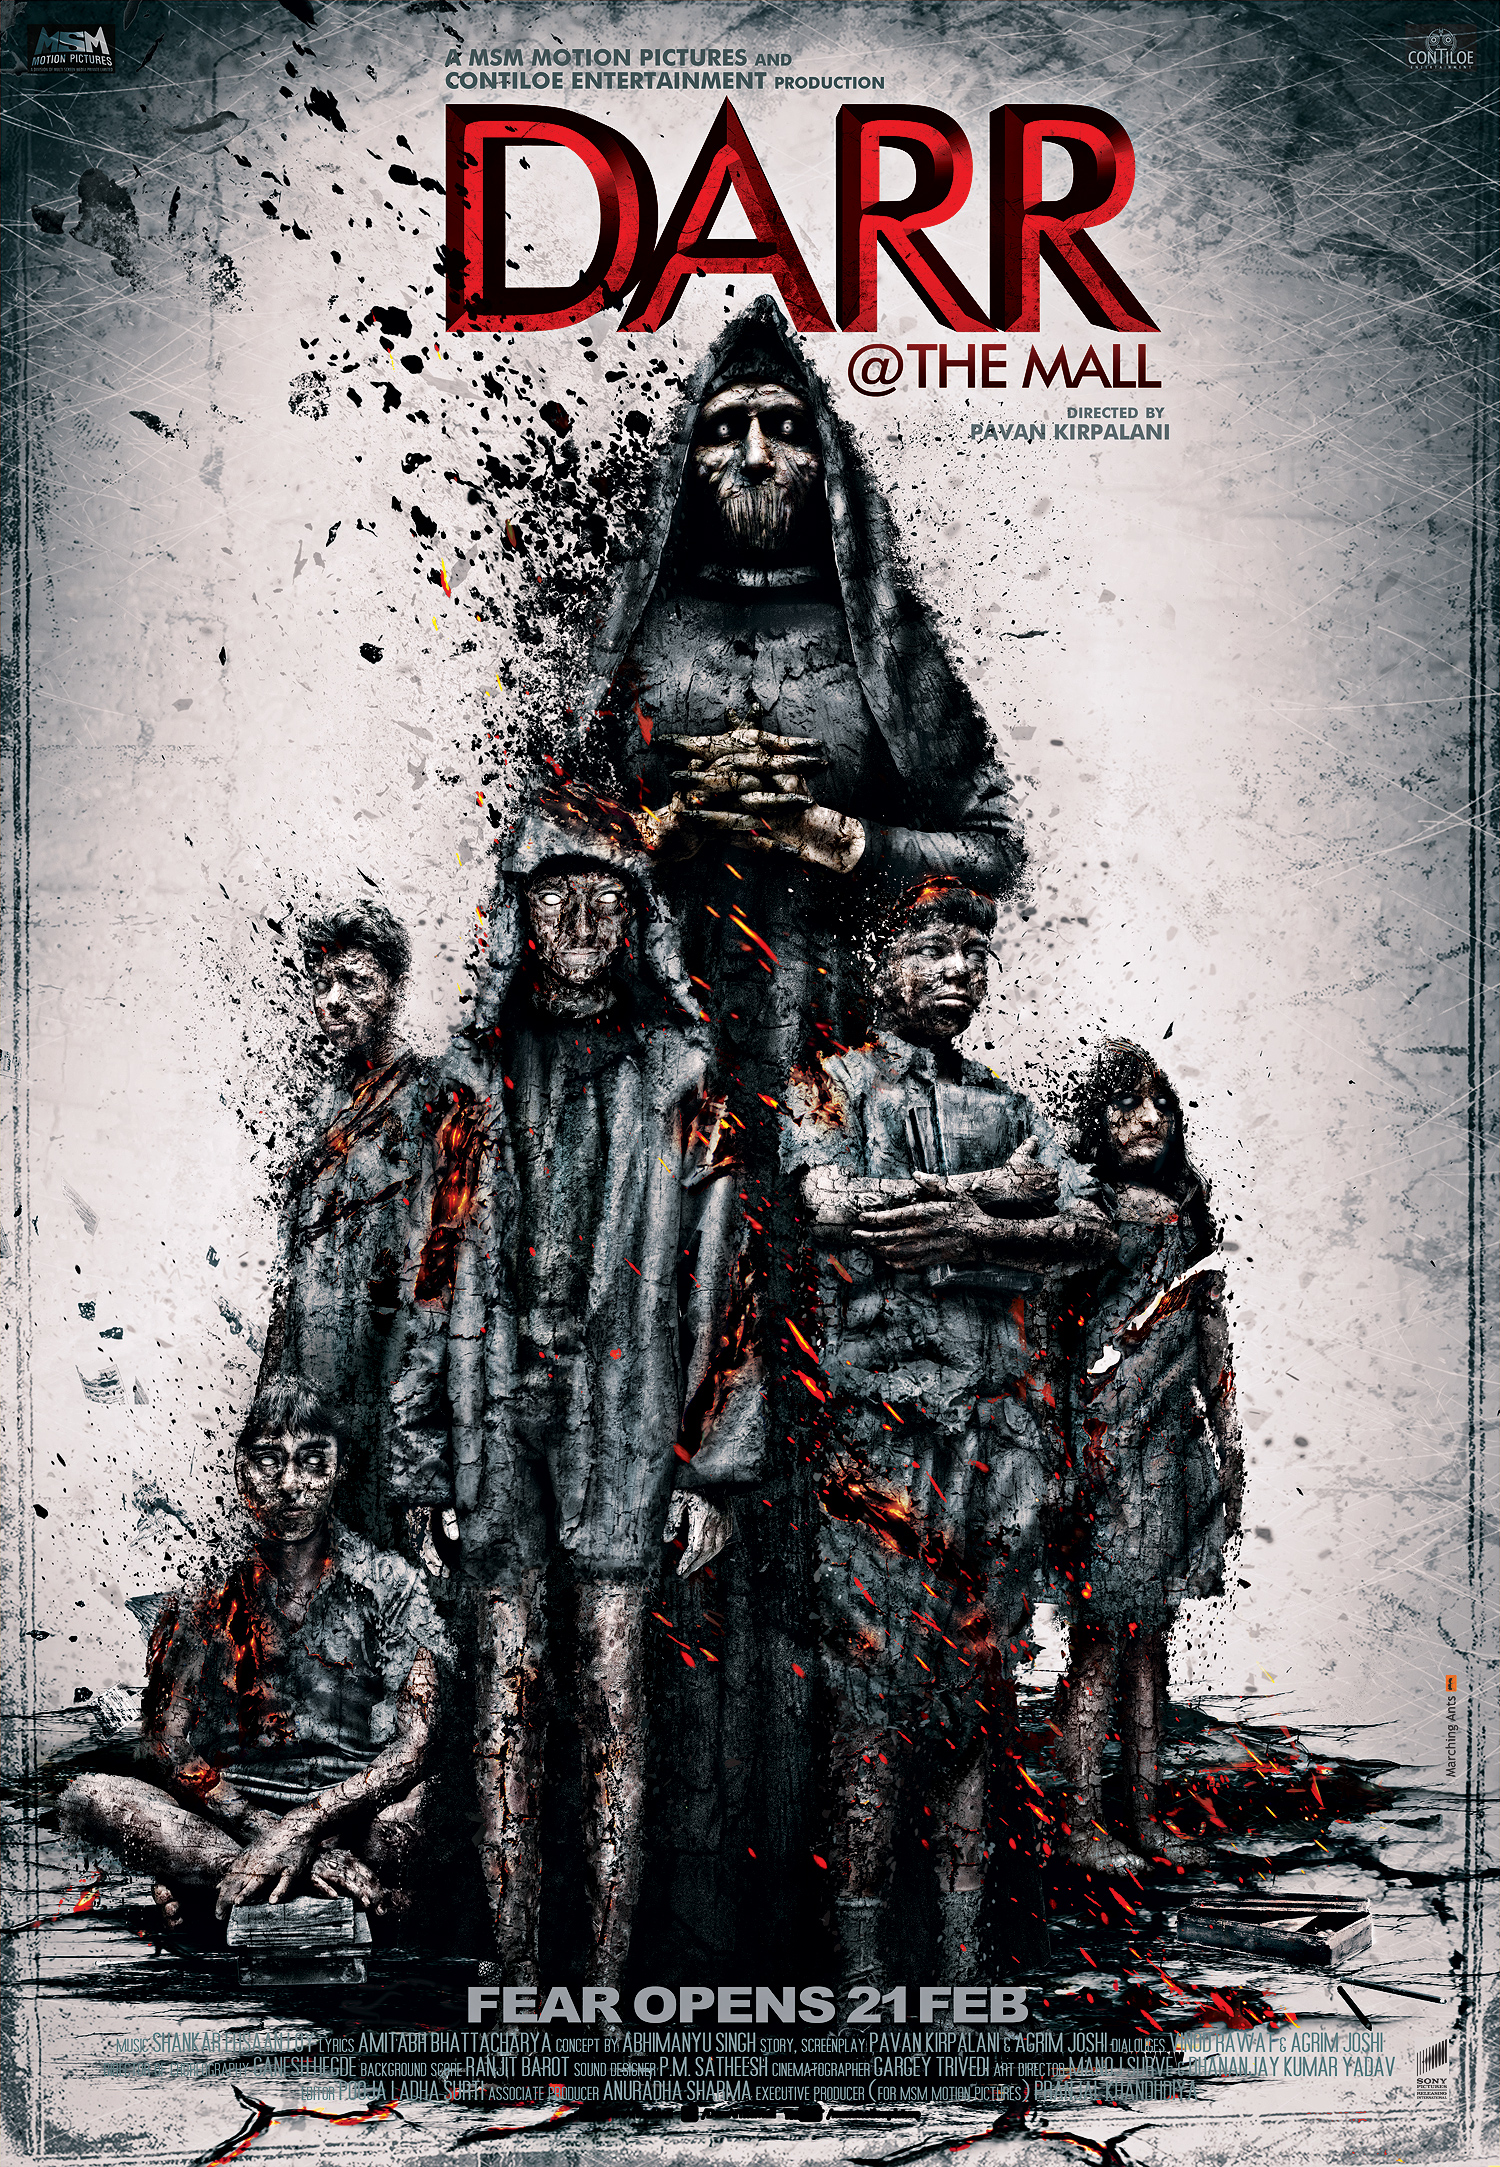 Darr @ the Mall - VOSTFR (2014)